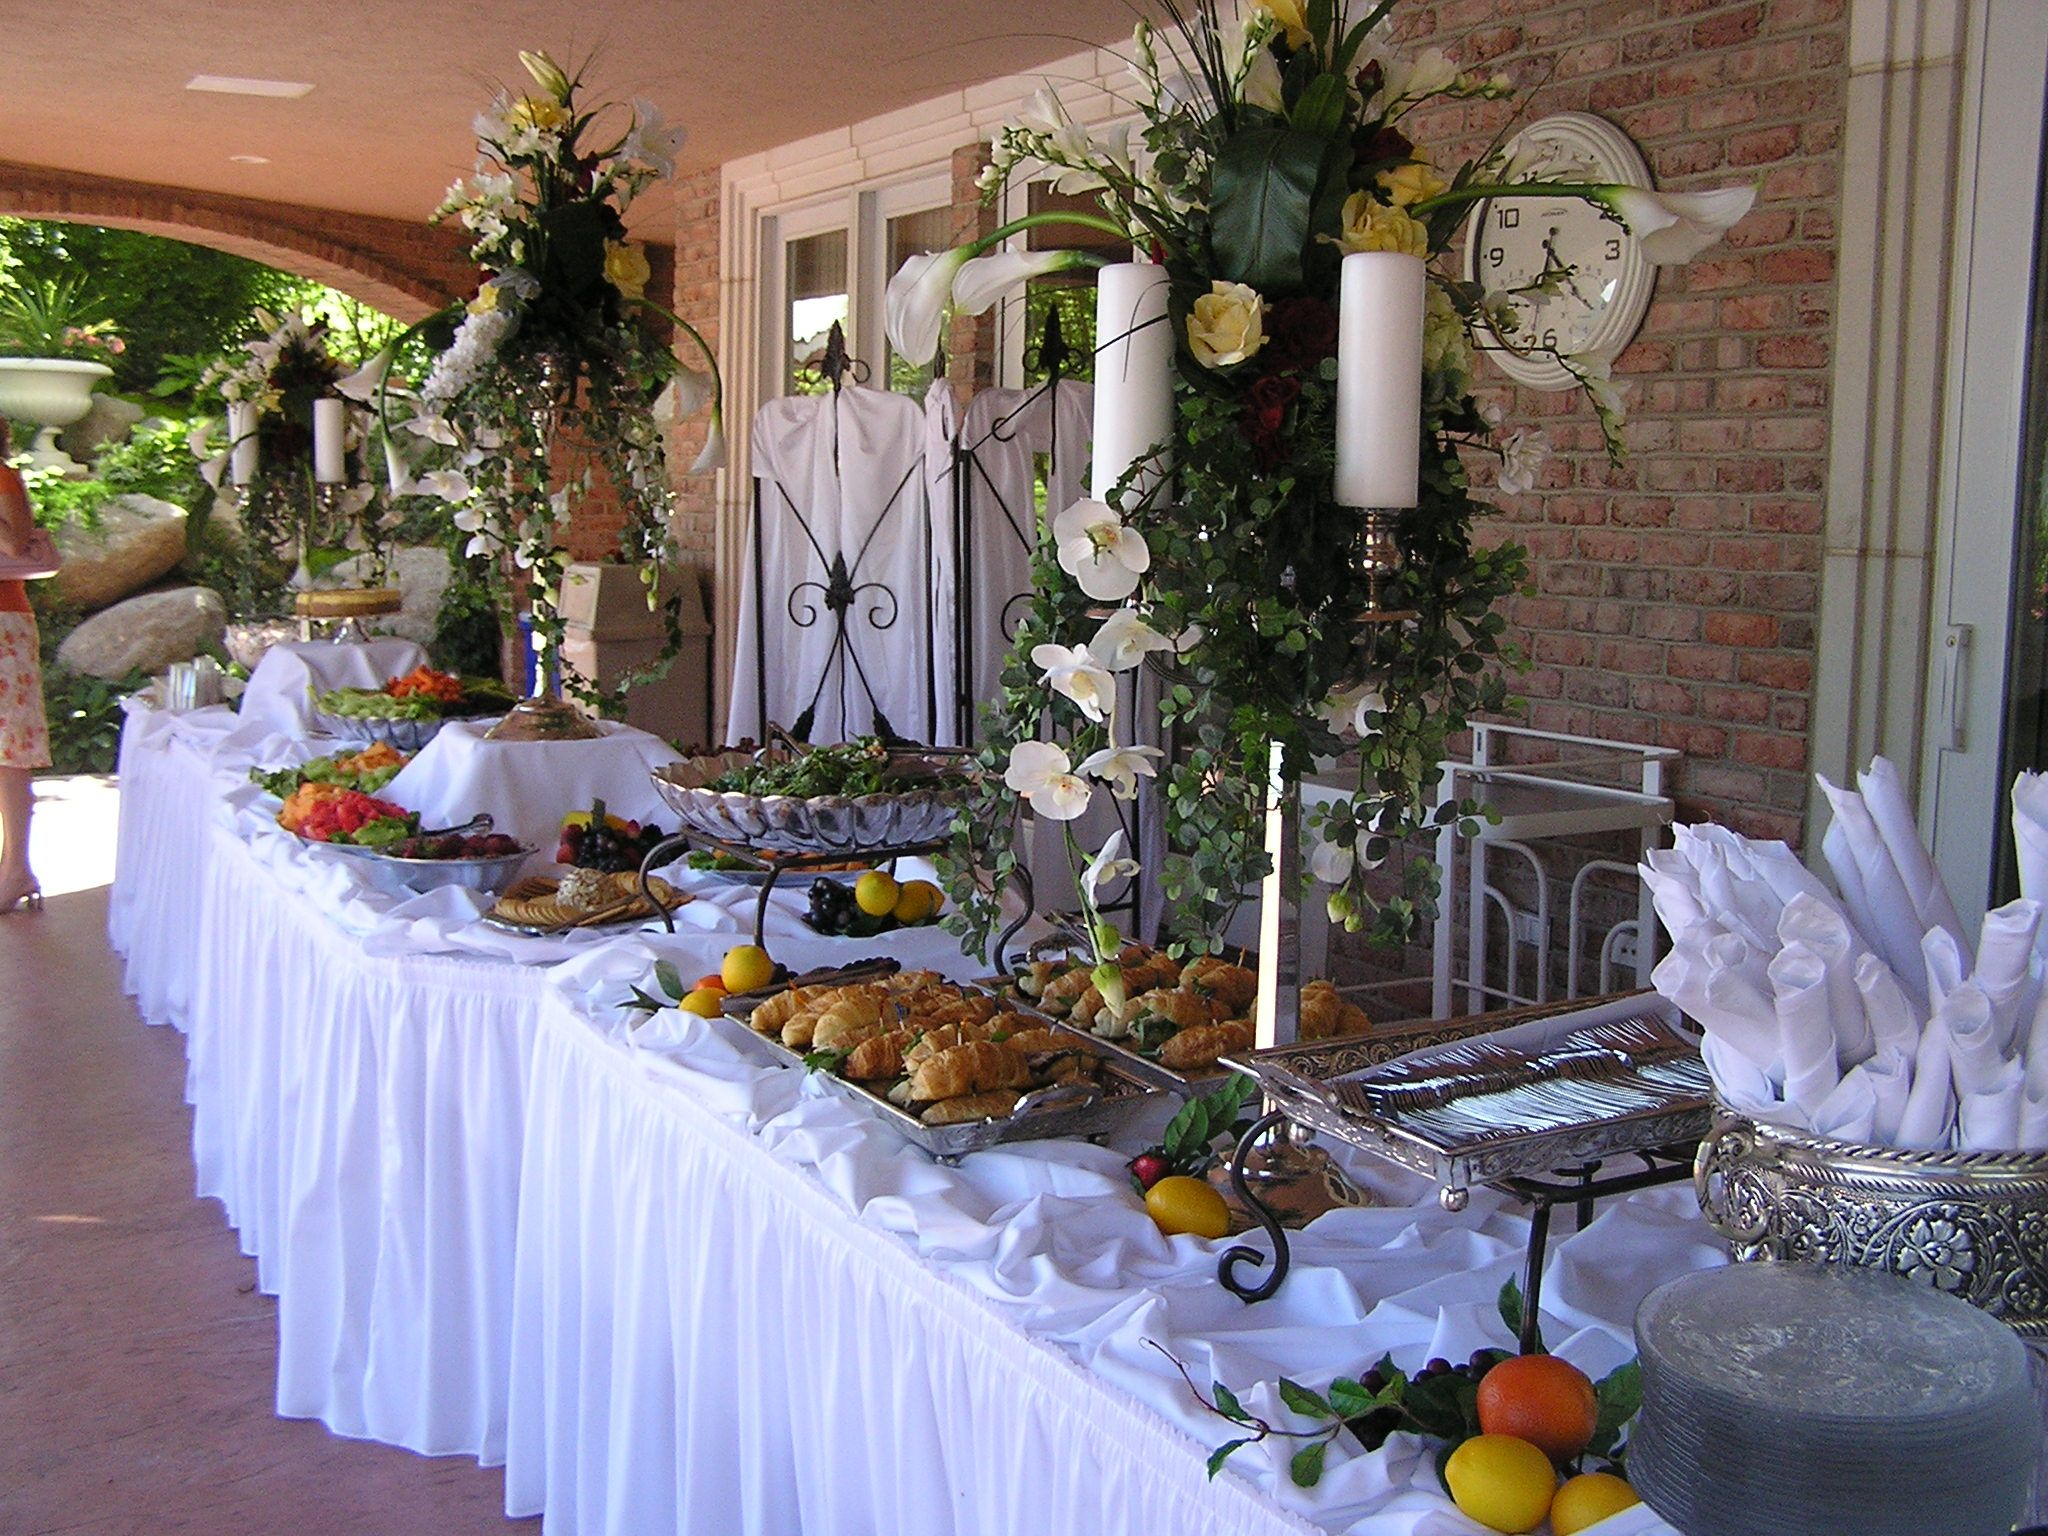 christmas buffet table decorations pictures | White banquet table ...